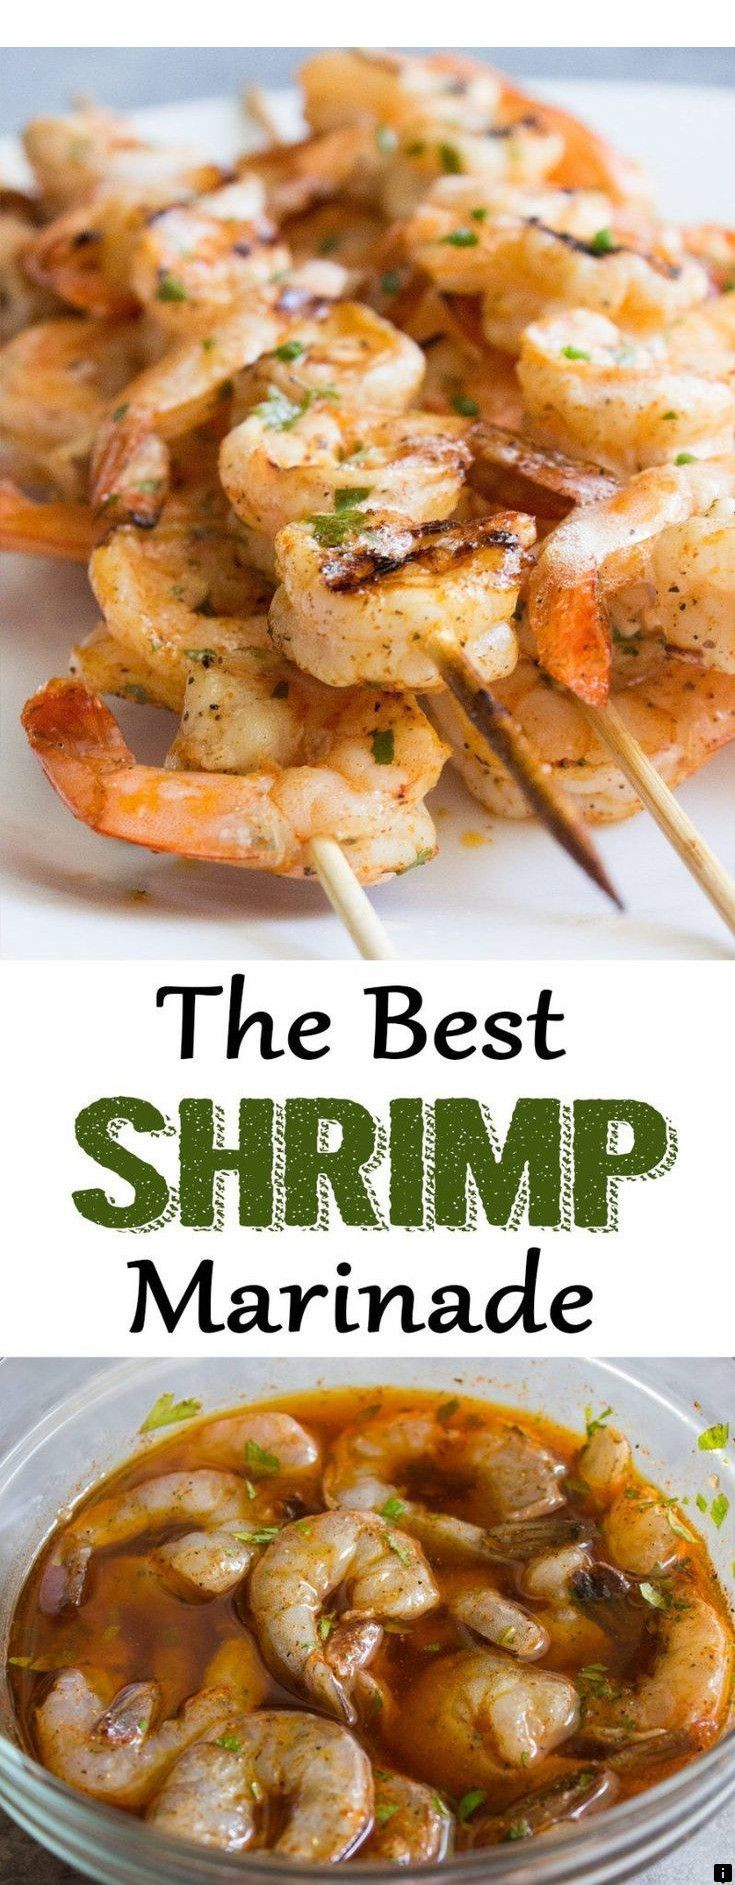 Find Out About Weber Charcoal Grill Follow The Link For More The Web Presence Is Worth Checkin Seafood Recipes Grilled Shrimp Recipes Pork Rib Recipes